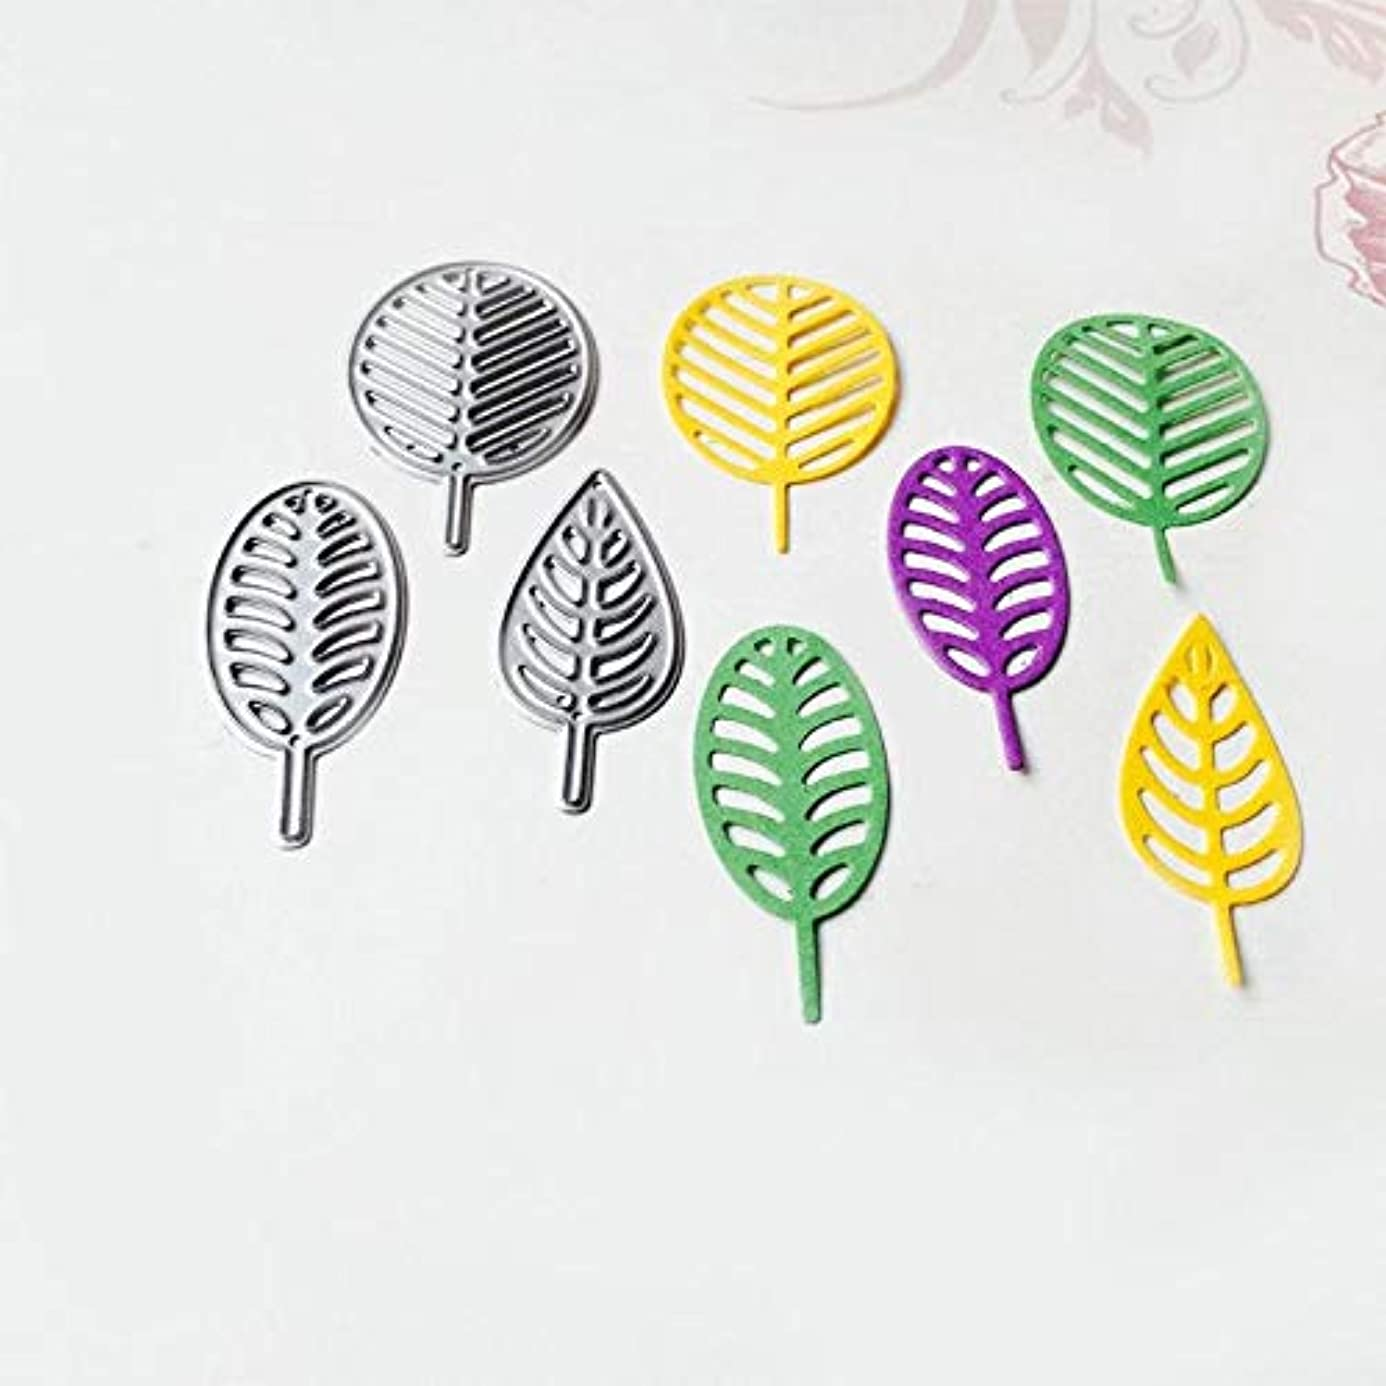 Cacys-Store - DIY Cutting Dies Leaves Metal Carbon Steel Stencils Maple Leaf for Scrapbooking/Photo Die Cuts Album Embossing Craft Decor uxz7604599